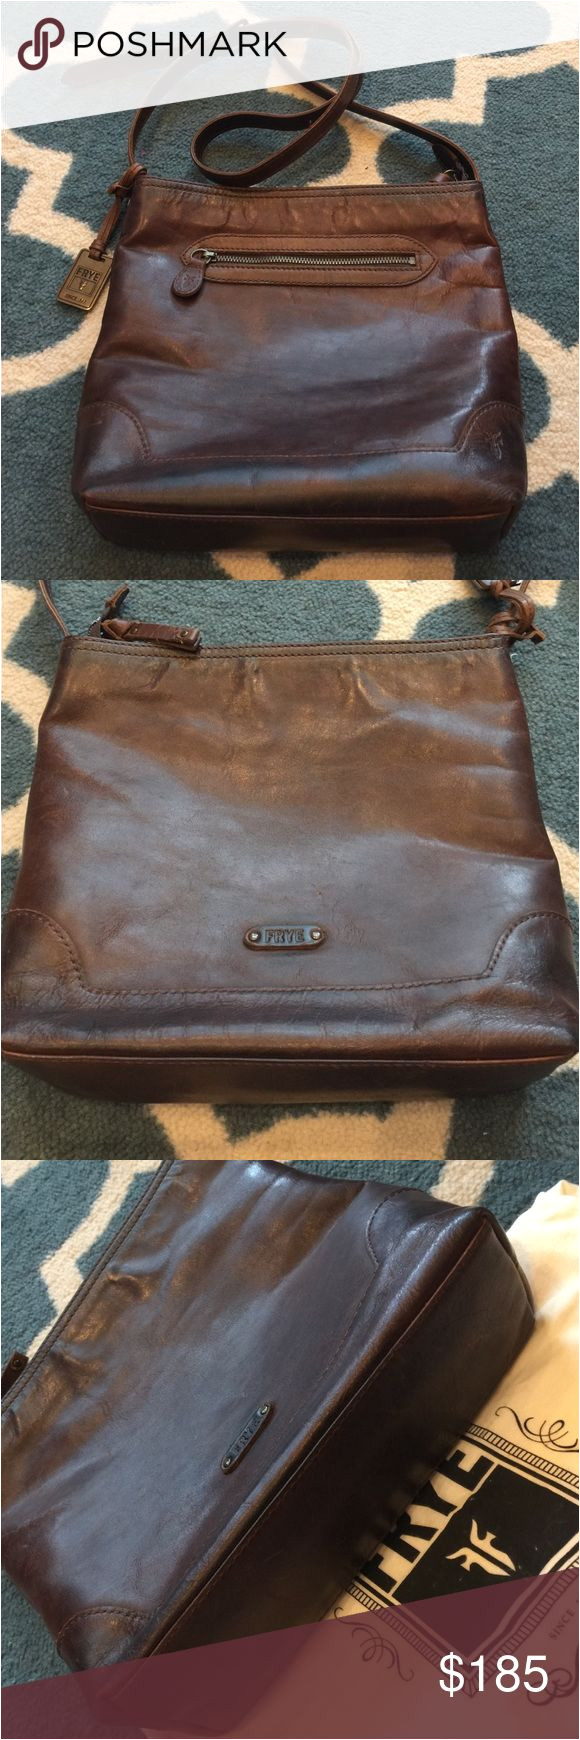 frye crossbody leather purse pre owned frye shoulder bag in excellent condition for those that